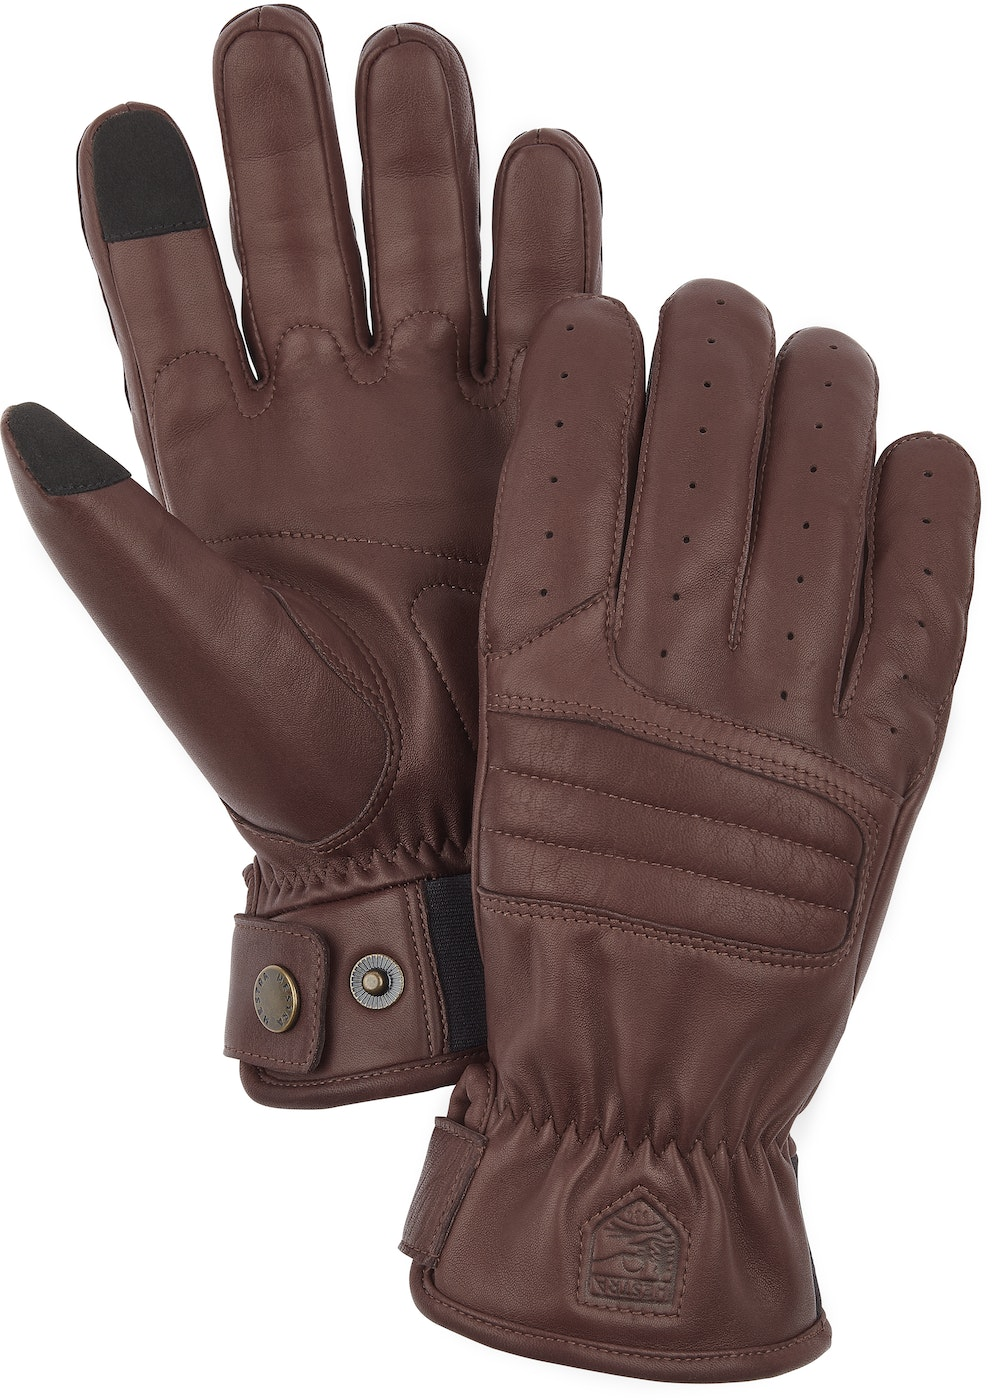 Product image for 39100 Velo Leather